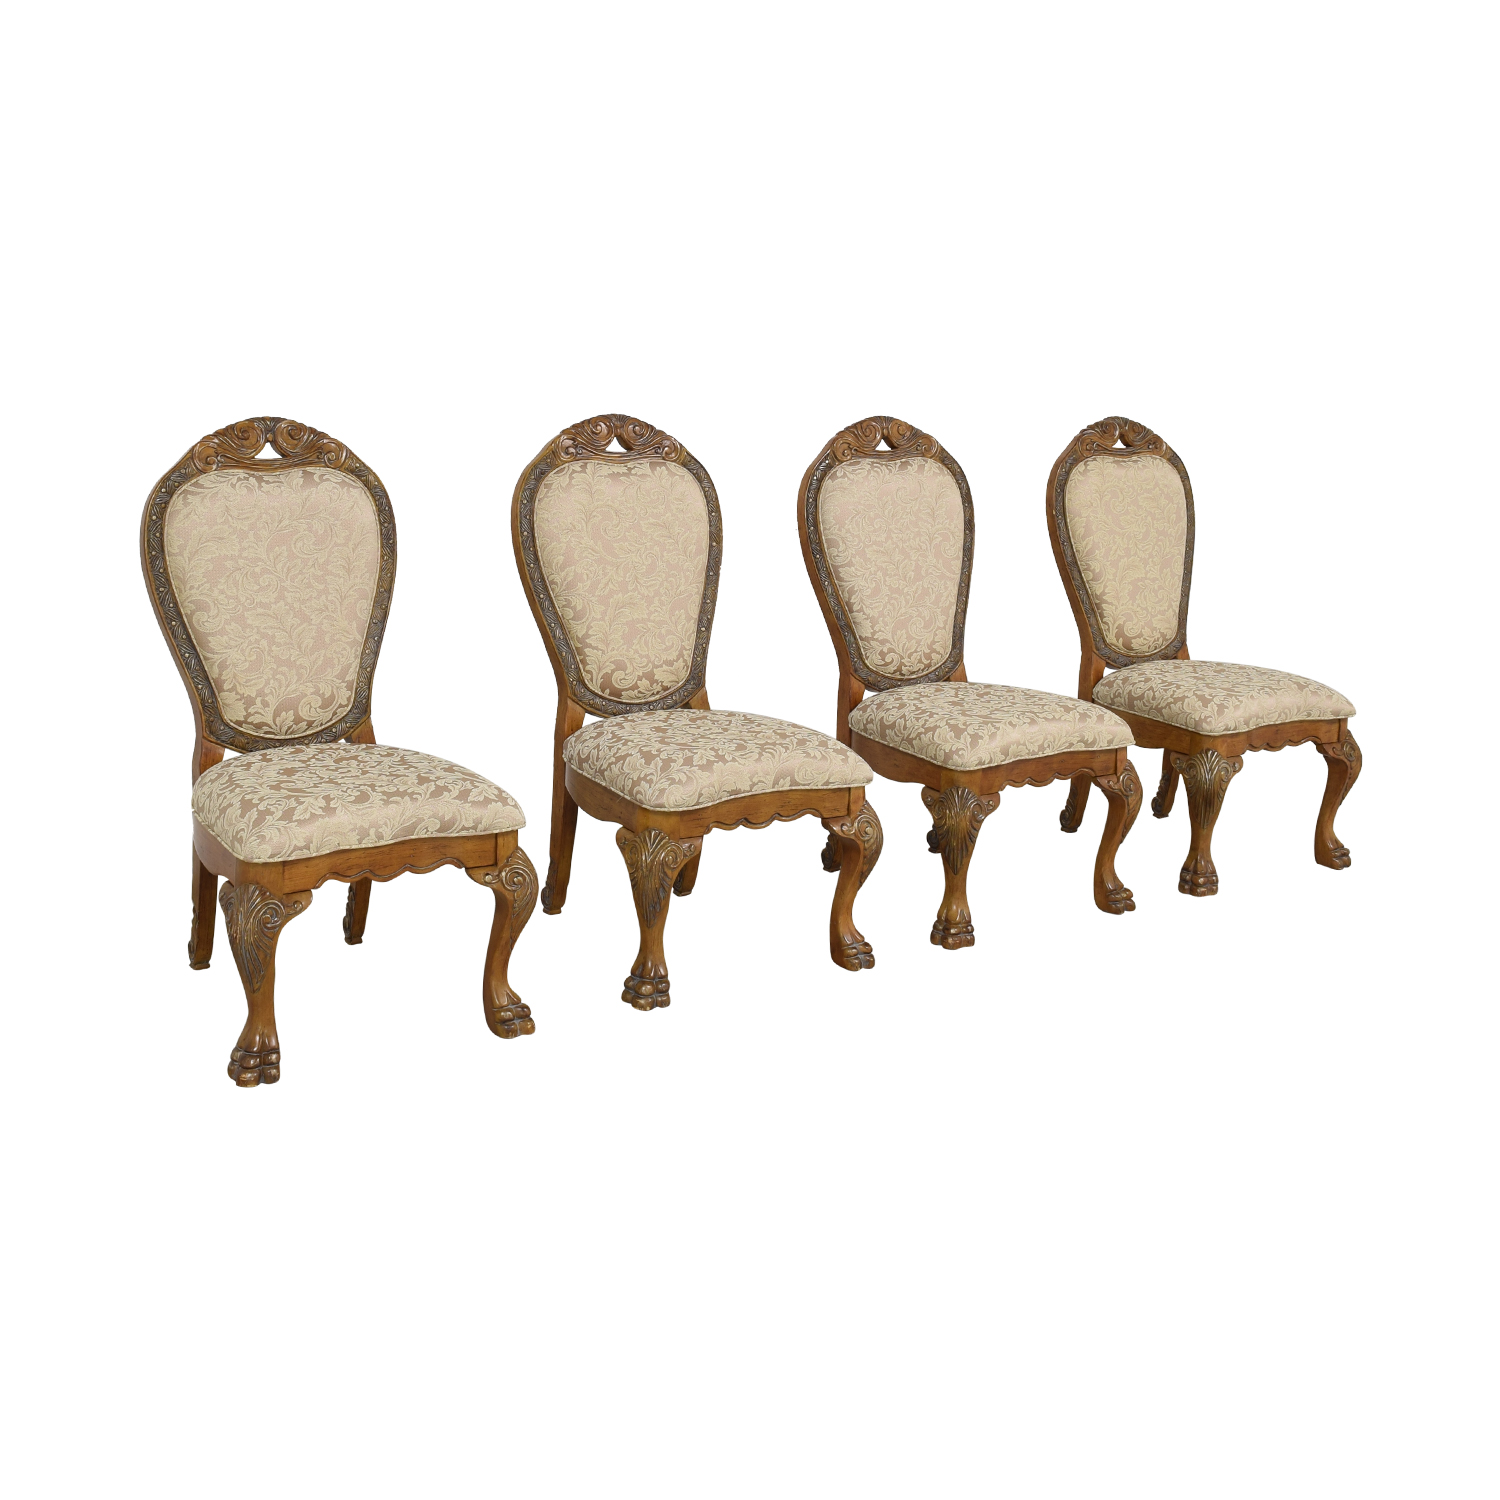 Michael Amini Michael Amini Upholstered Dining Chairs for sale